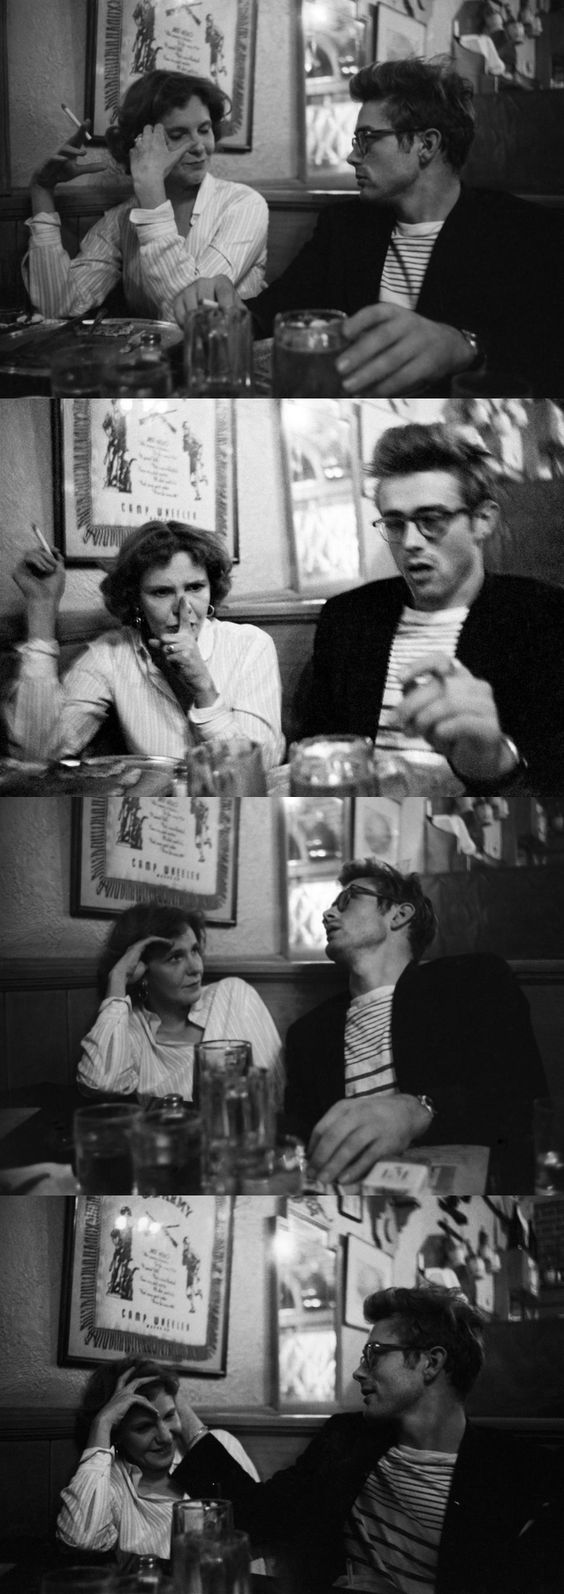 James Dean and Geraldine Page (The Immoralist) at Jerryâs Bar in New York.